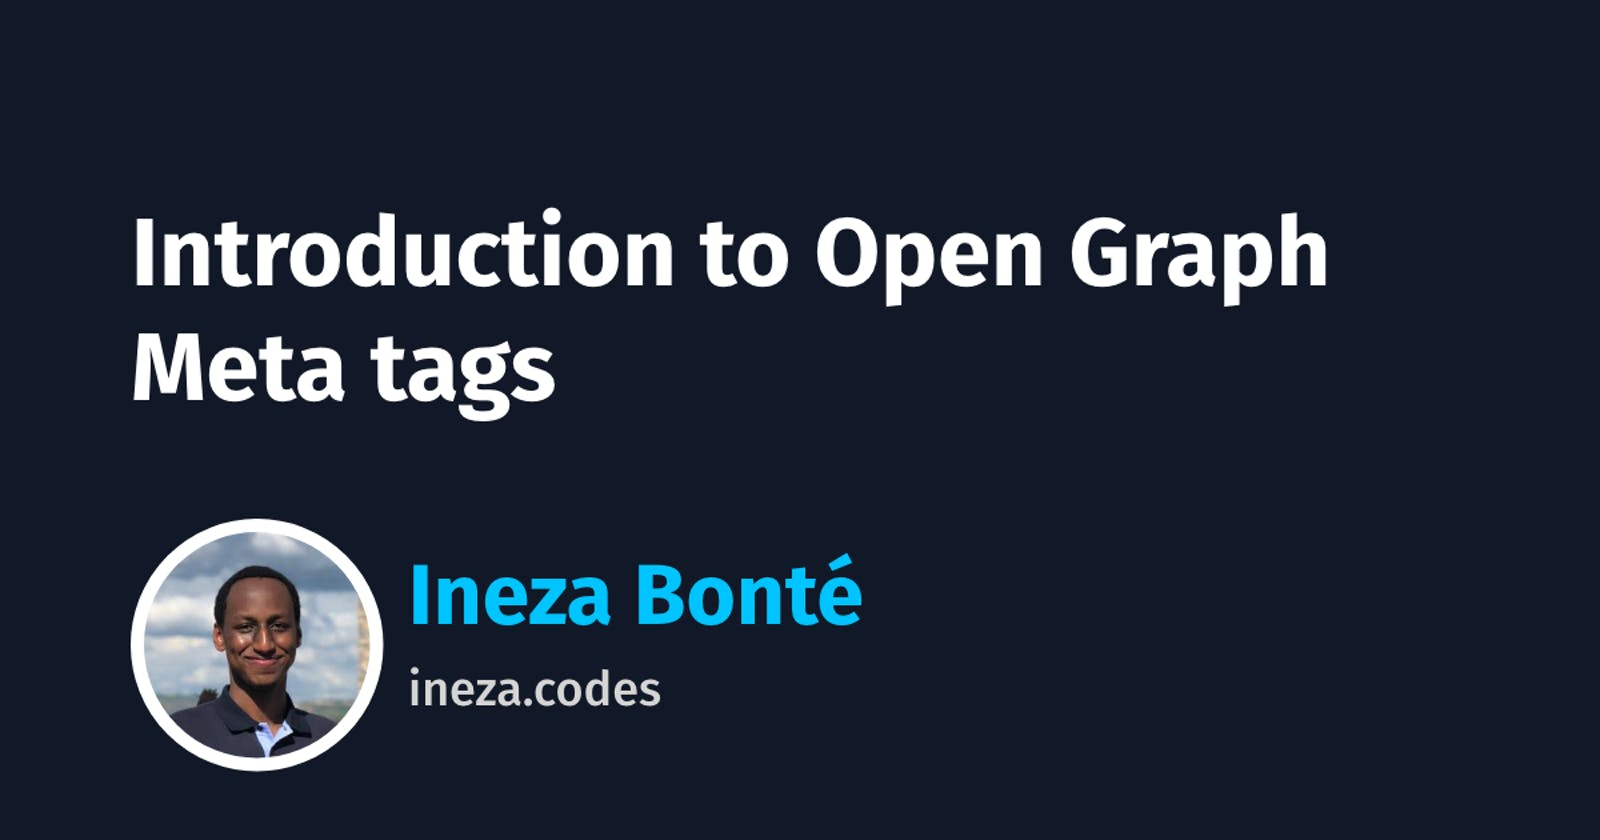 Introduction to Open Graph Meta tags